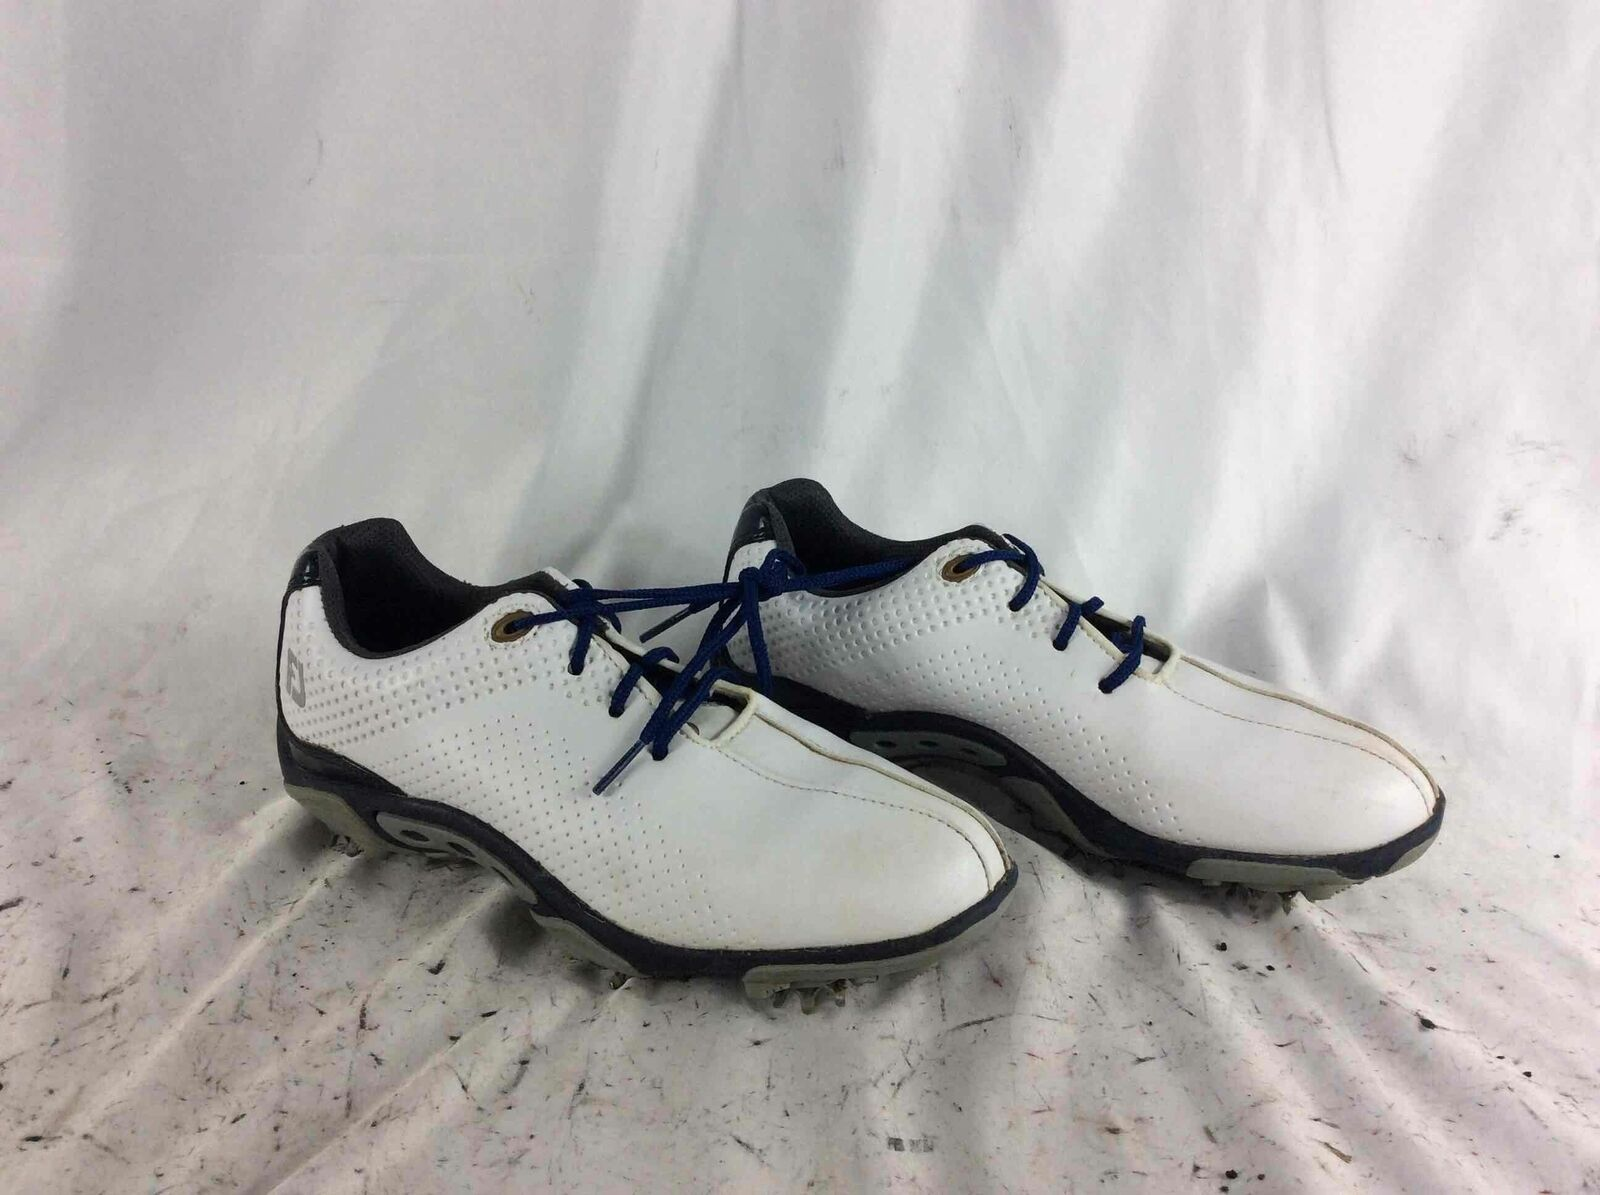 Primary image for Footjoy 45023 5.0 Size Golf Shoes